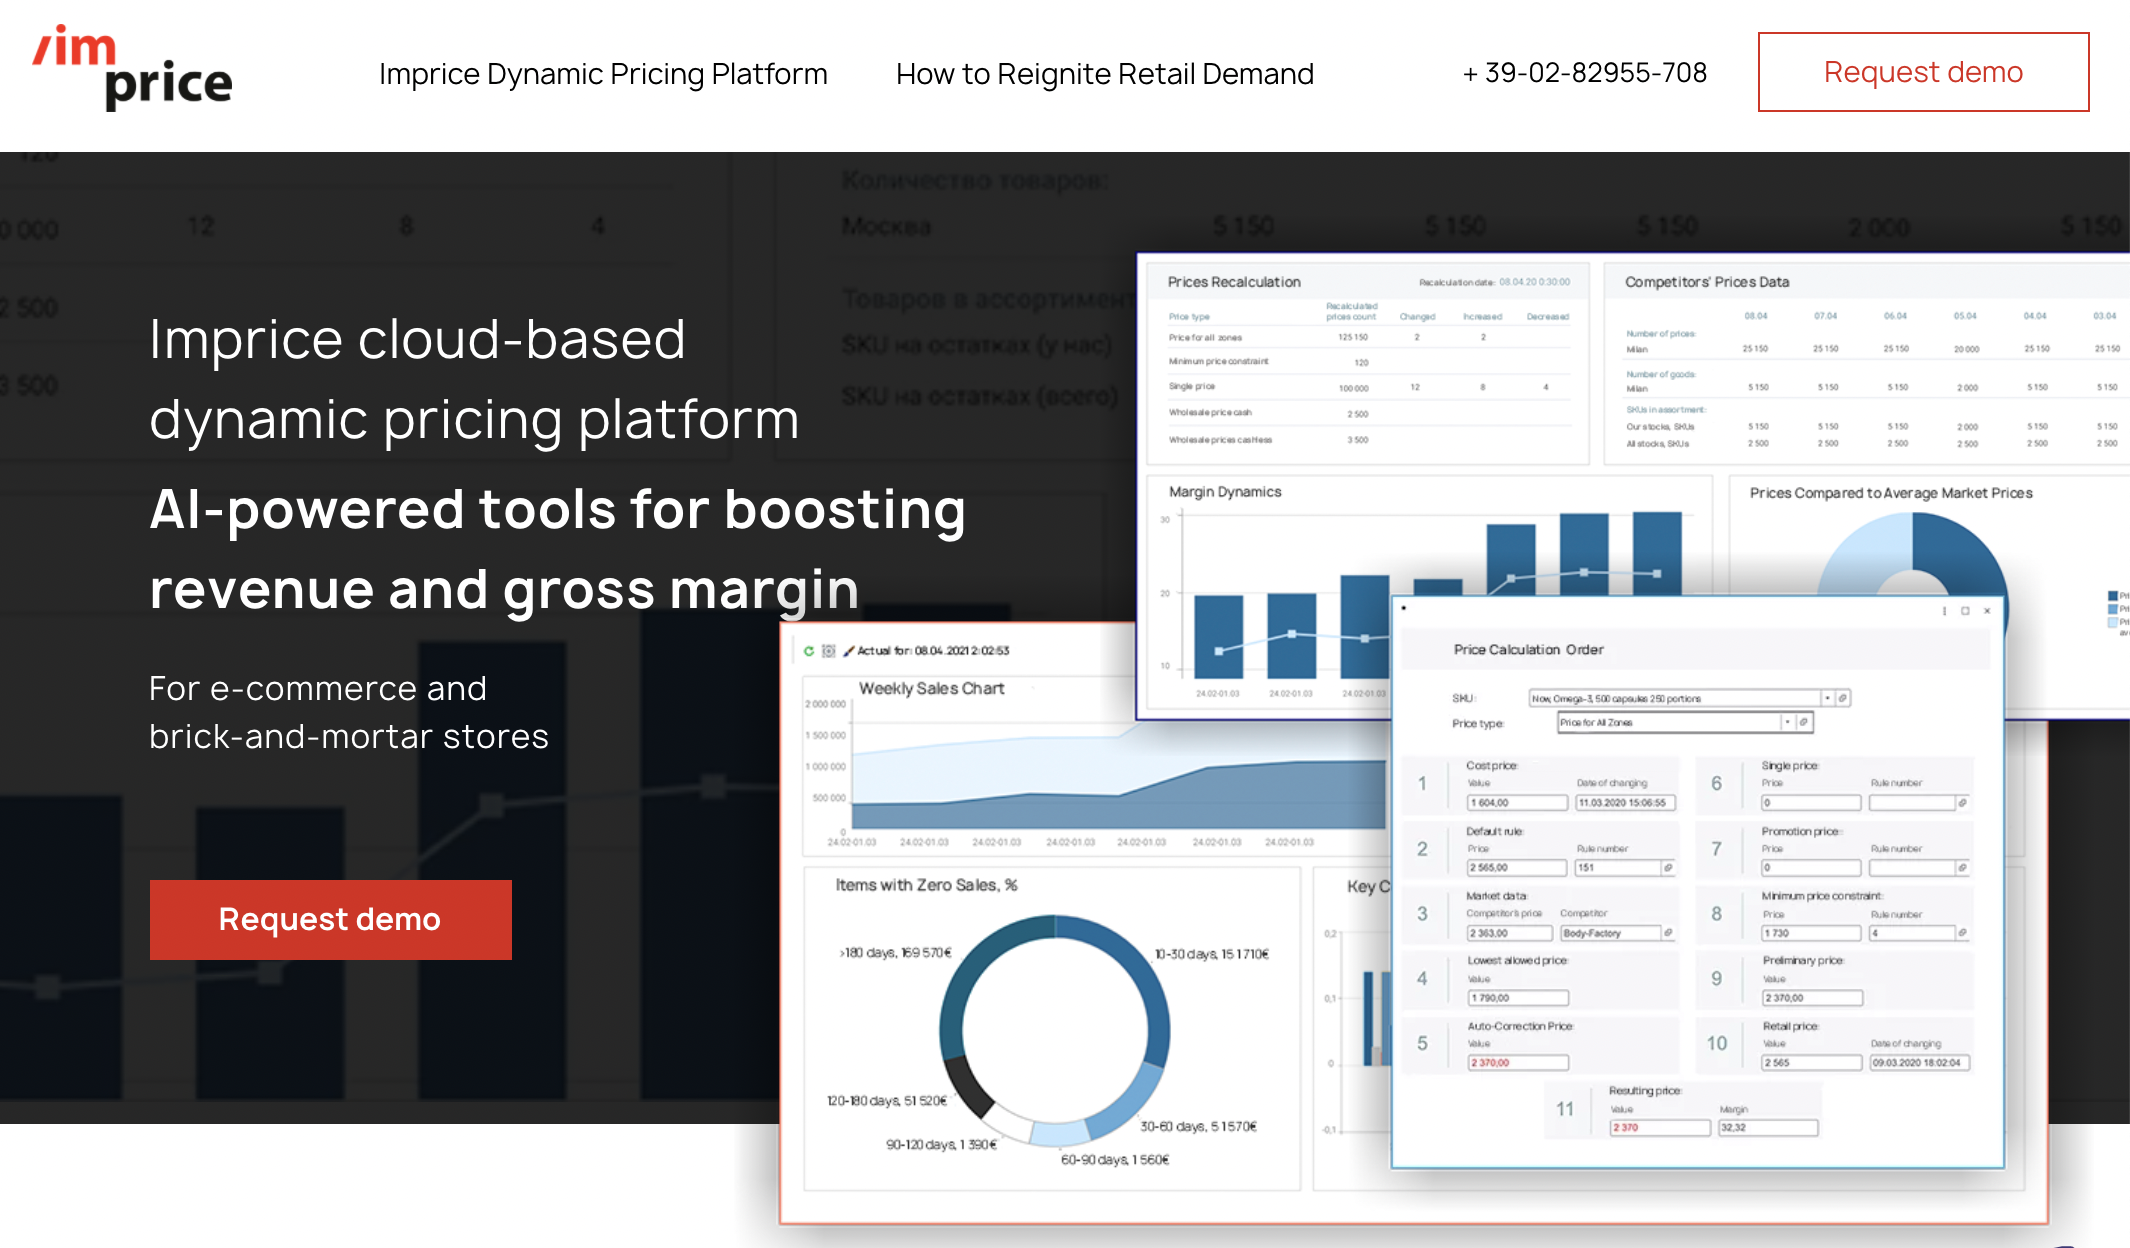 AI-powered tools for boosting revenue and gross margin.